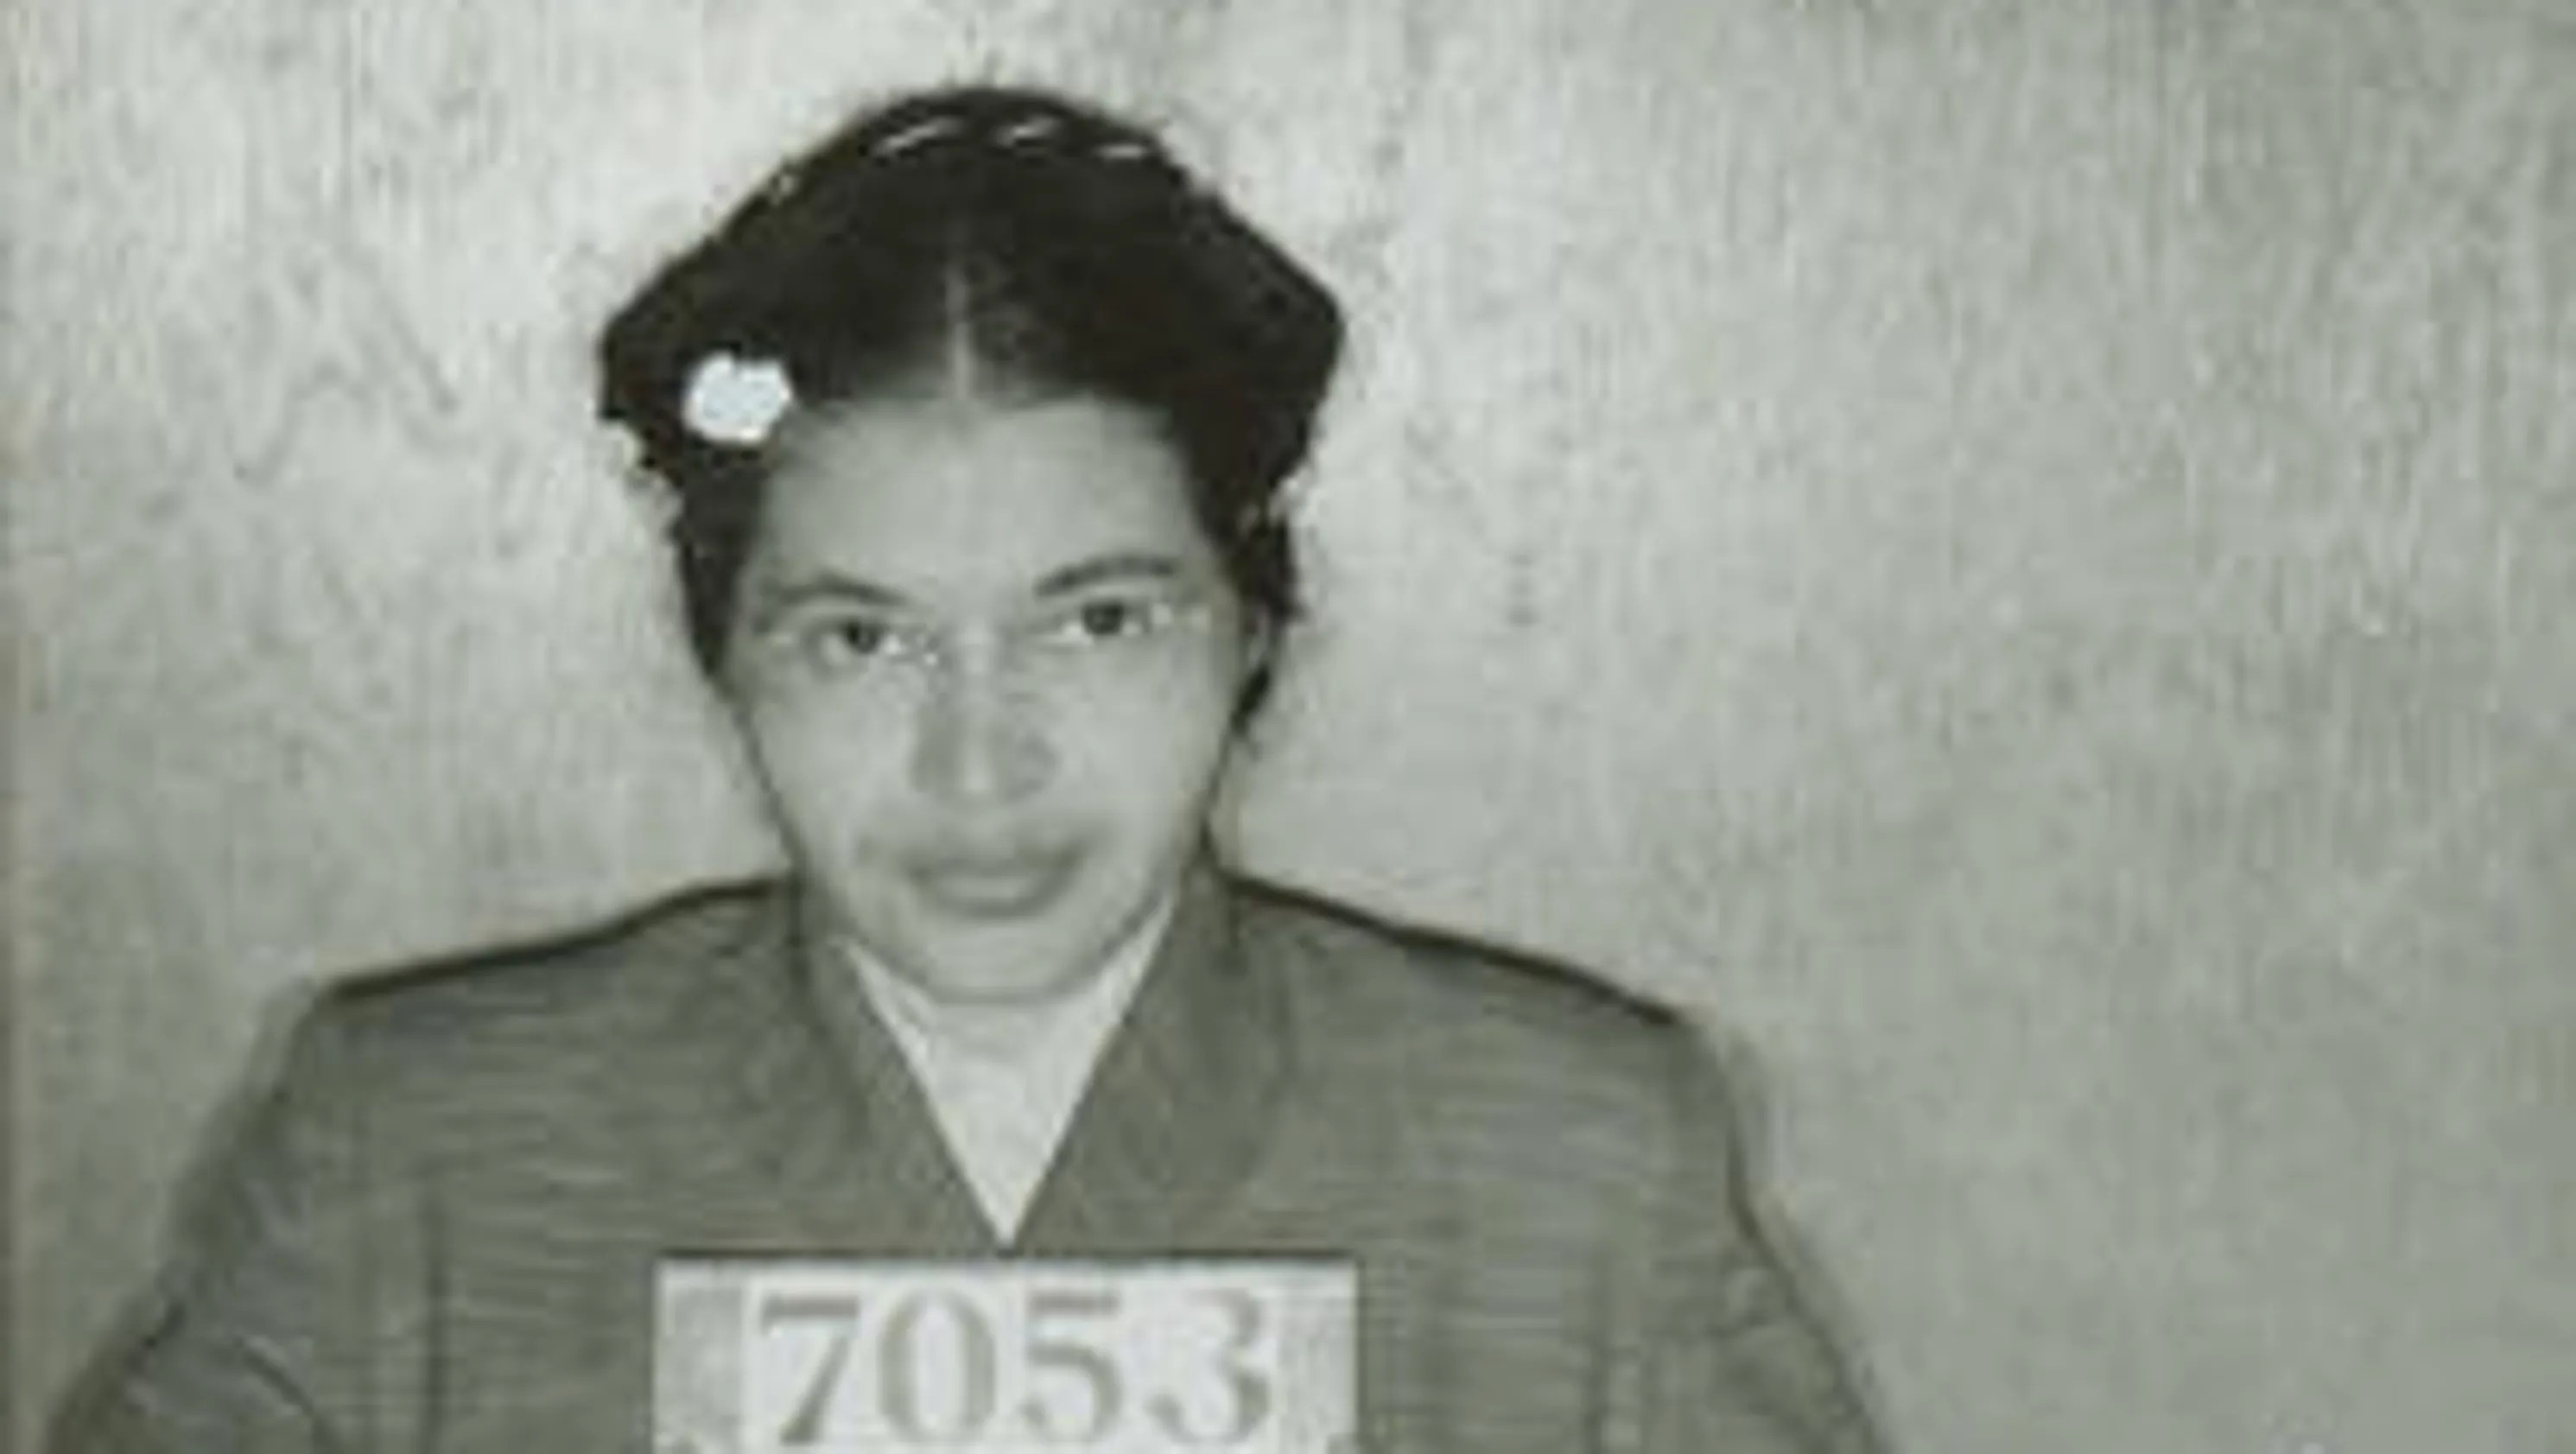 Rosa Parks Arrest On This Day In Sparked The Montgomery Bus Boycott And Changed The World